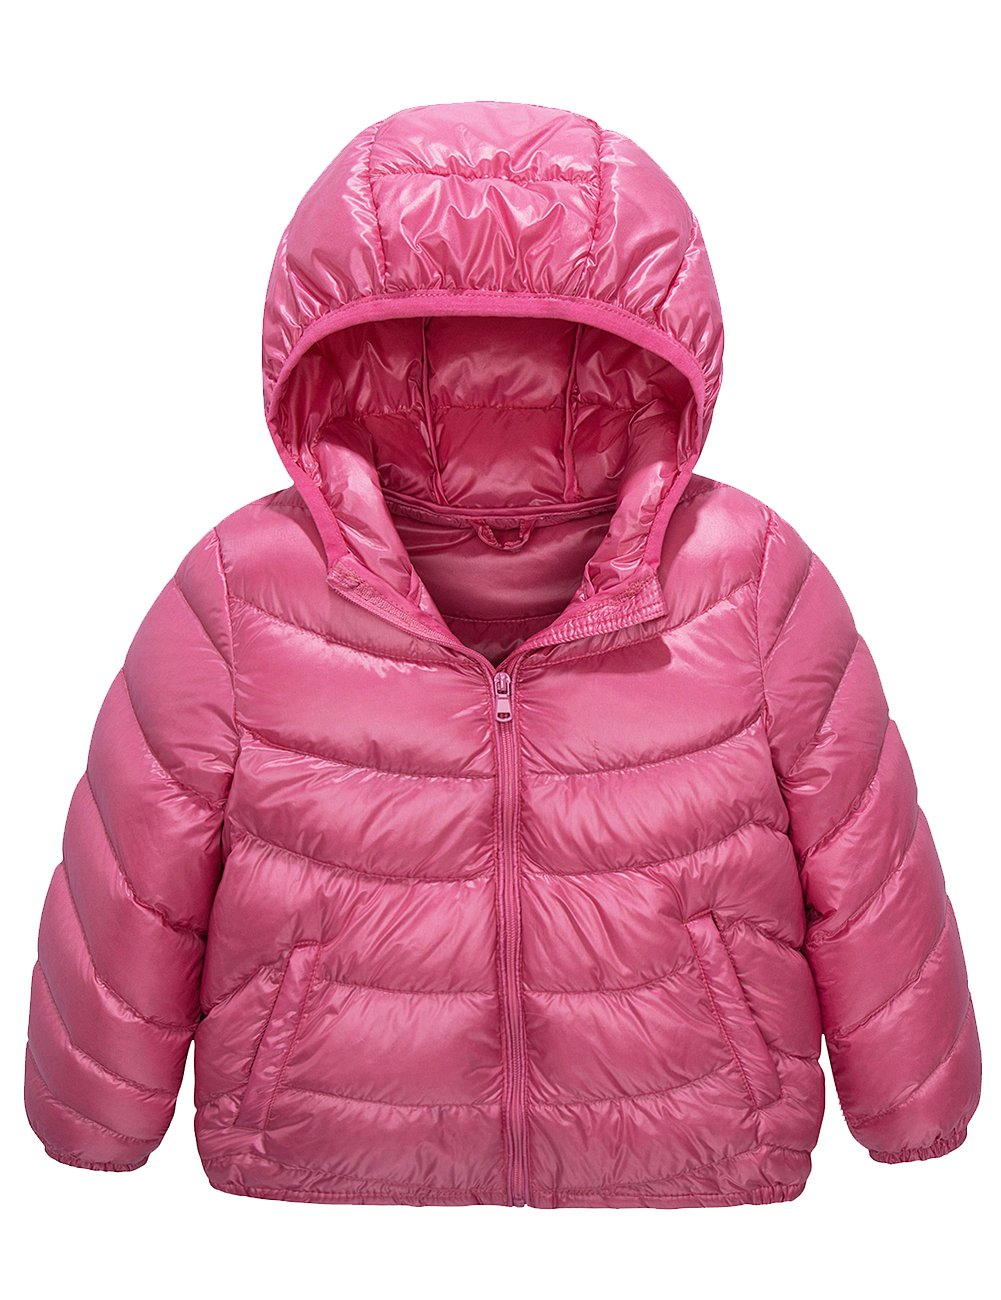 Spring&Gege Boys' Quilted Packable Hoodie Lightweight Puffer Jacket Windproof Outwear Children Warm Duck Down Coat for Boys and Girls Size 7-8 Years Pink